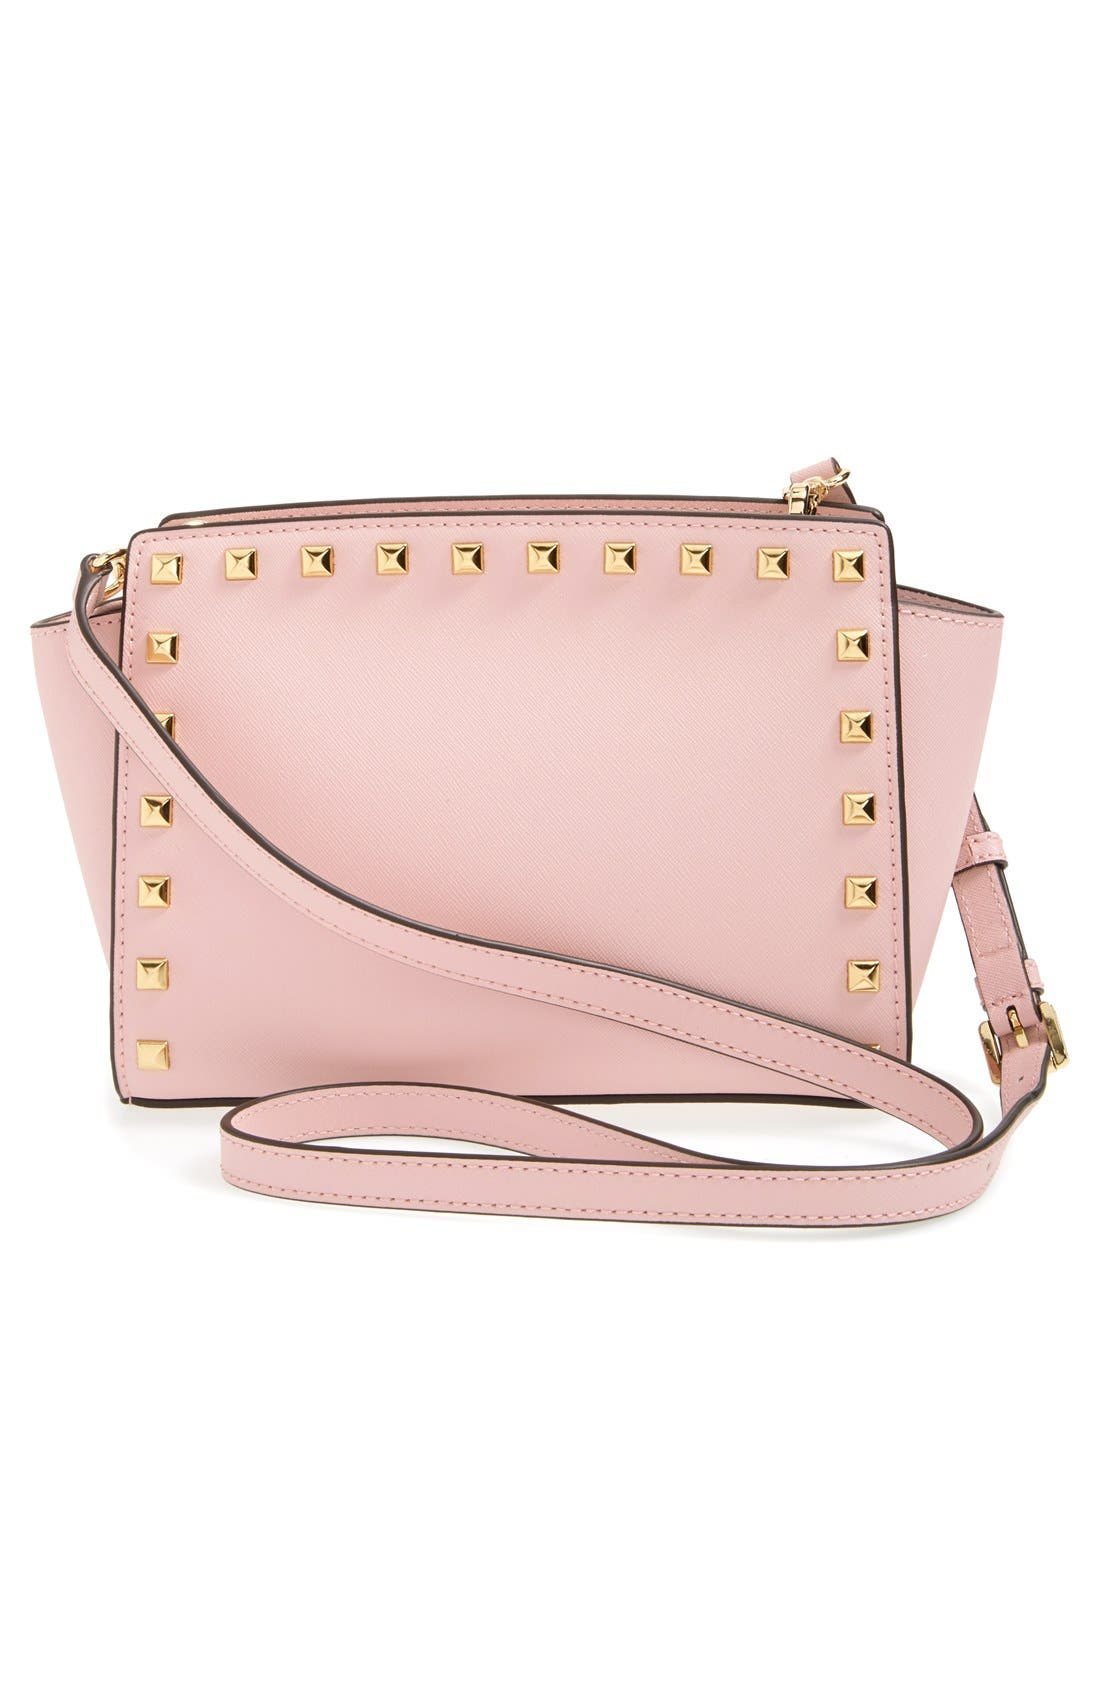 'Selma - Stud' Saffiano Leather Crossbody Bag,                             Alternate thumbnail 3, color,                             Blossom